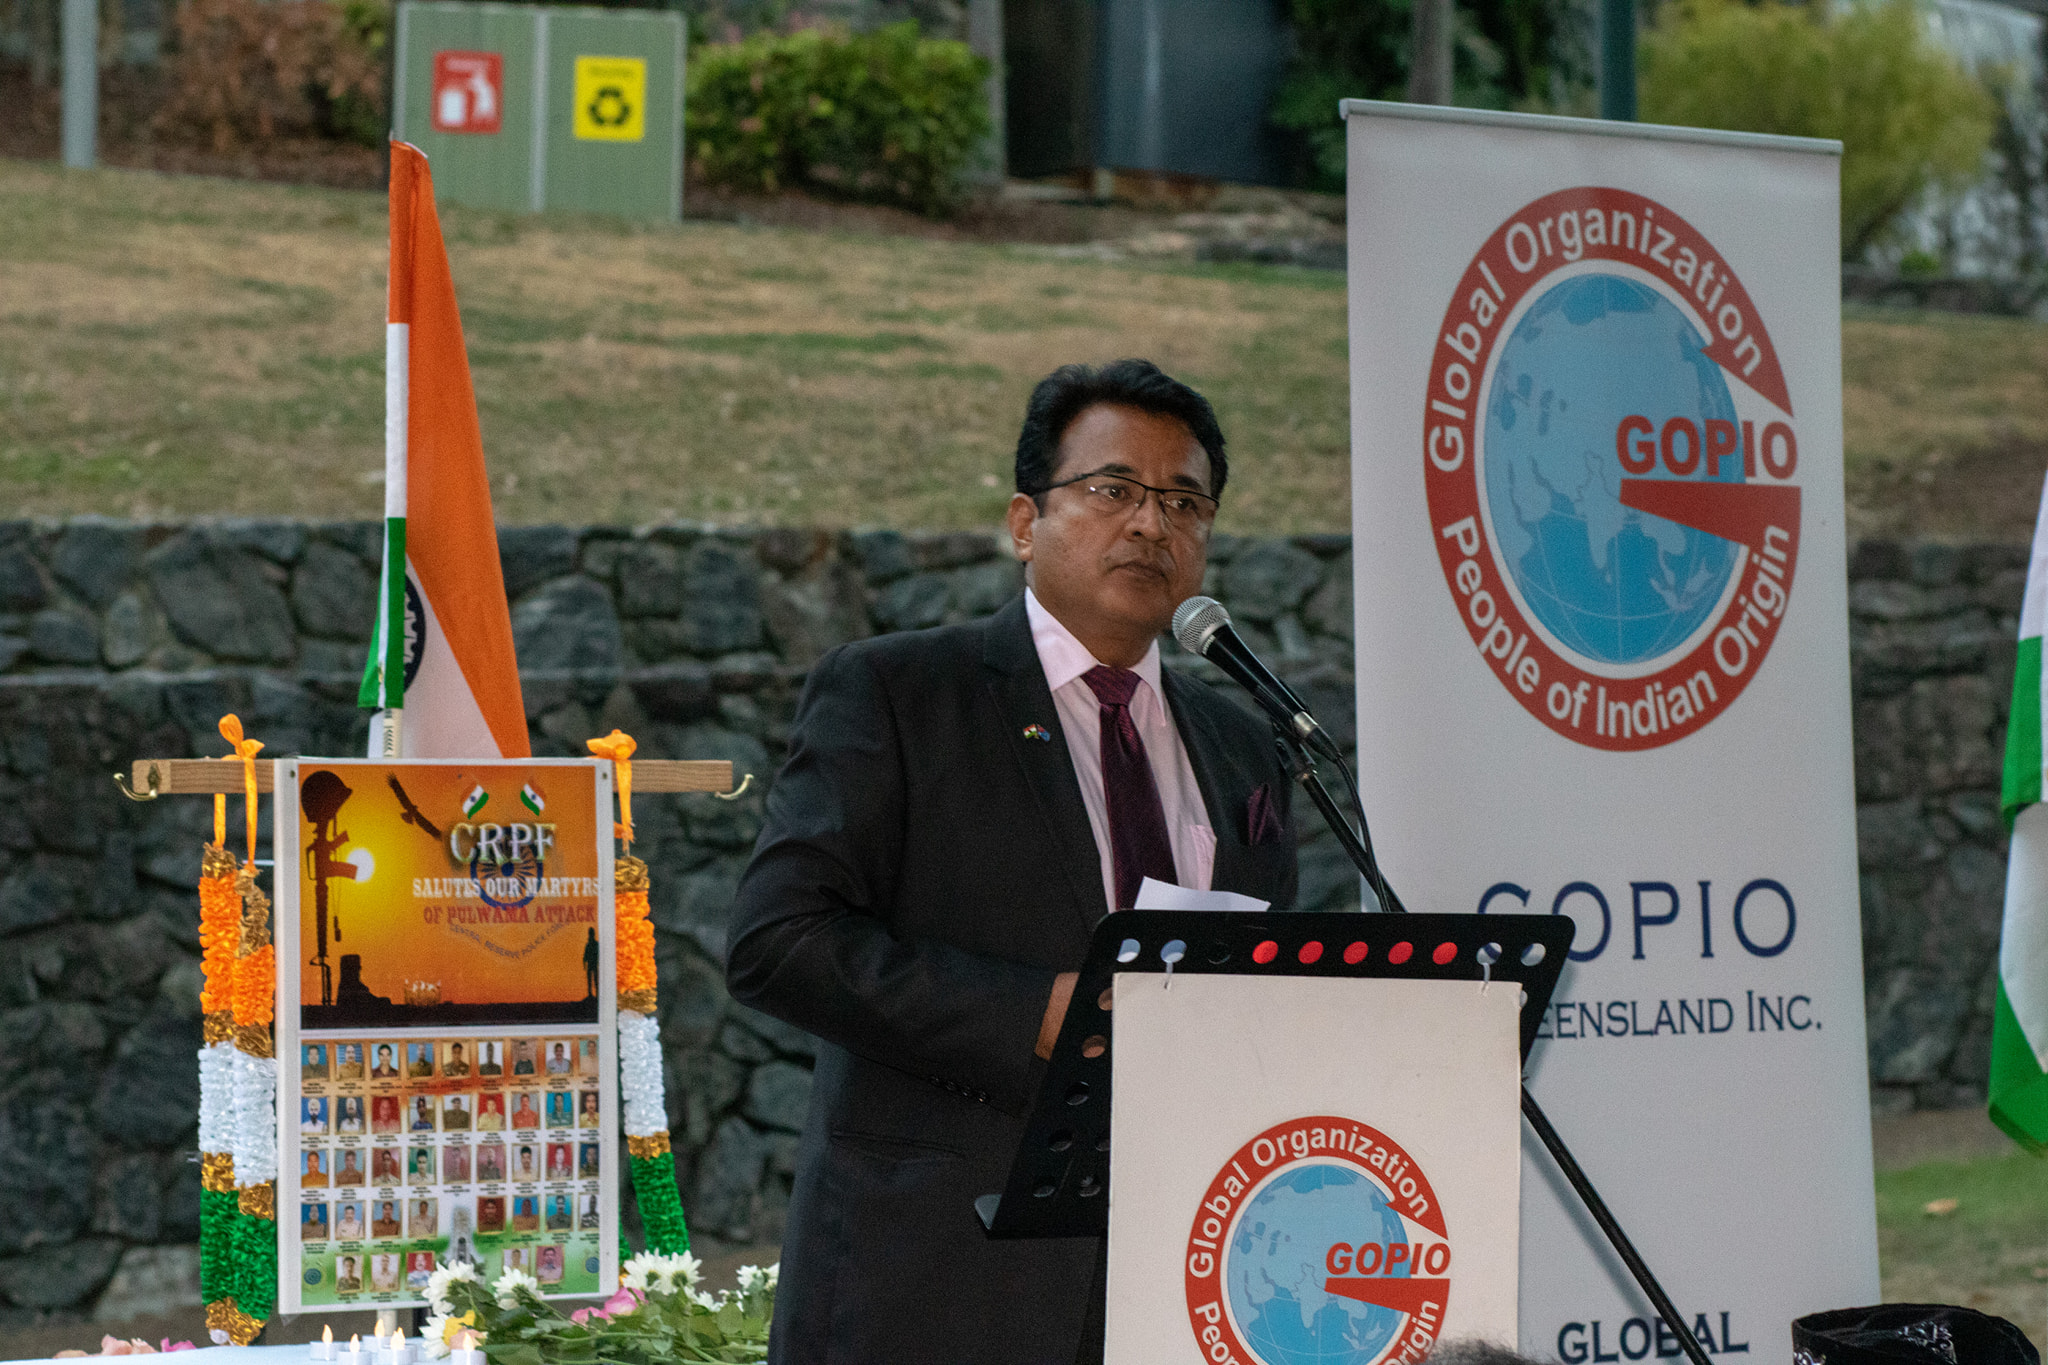 Speaking at a Memorial Service for the martyred Indian security personnel in Kashmir